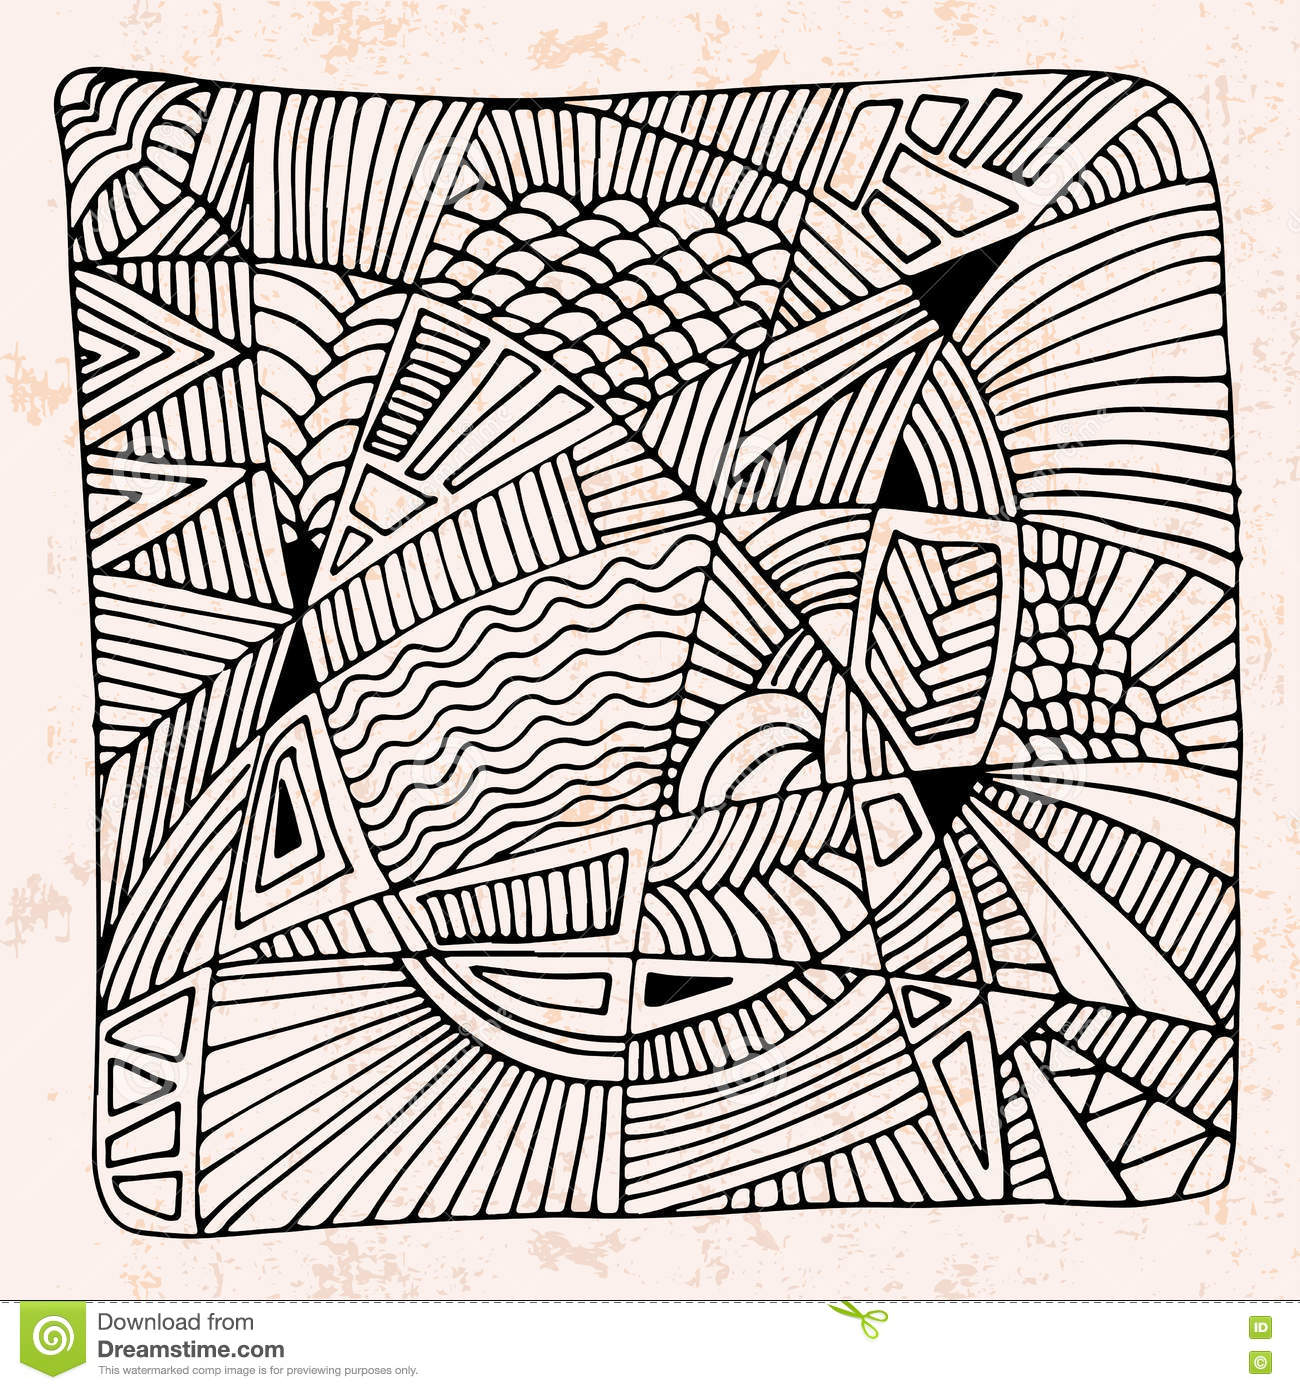 Abstract hand drawn background with different patterns